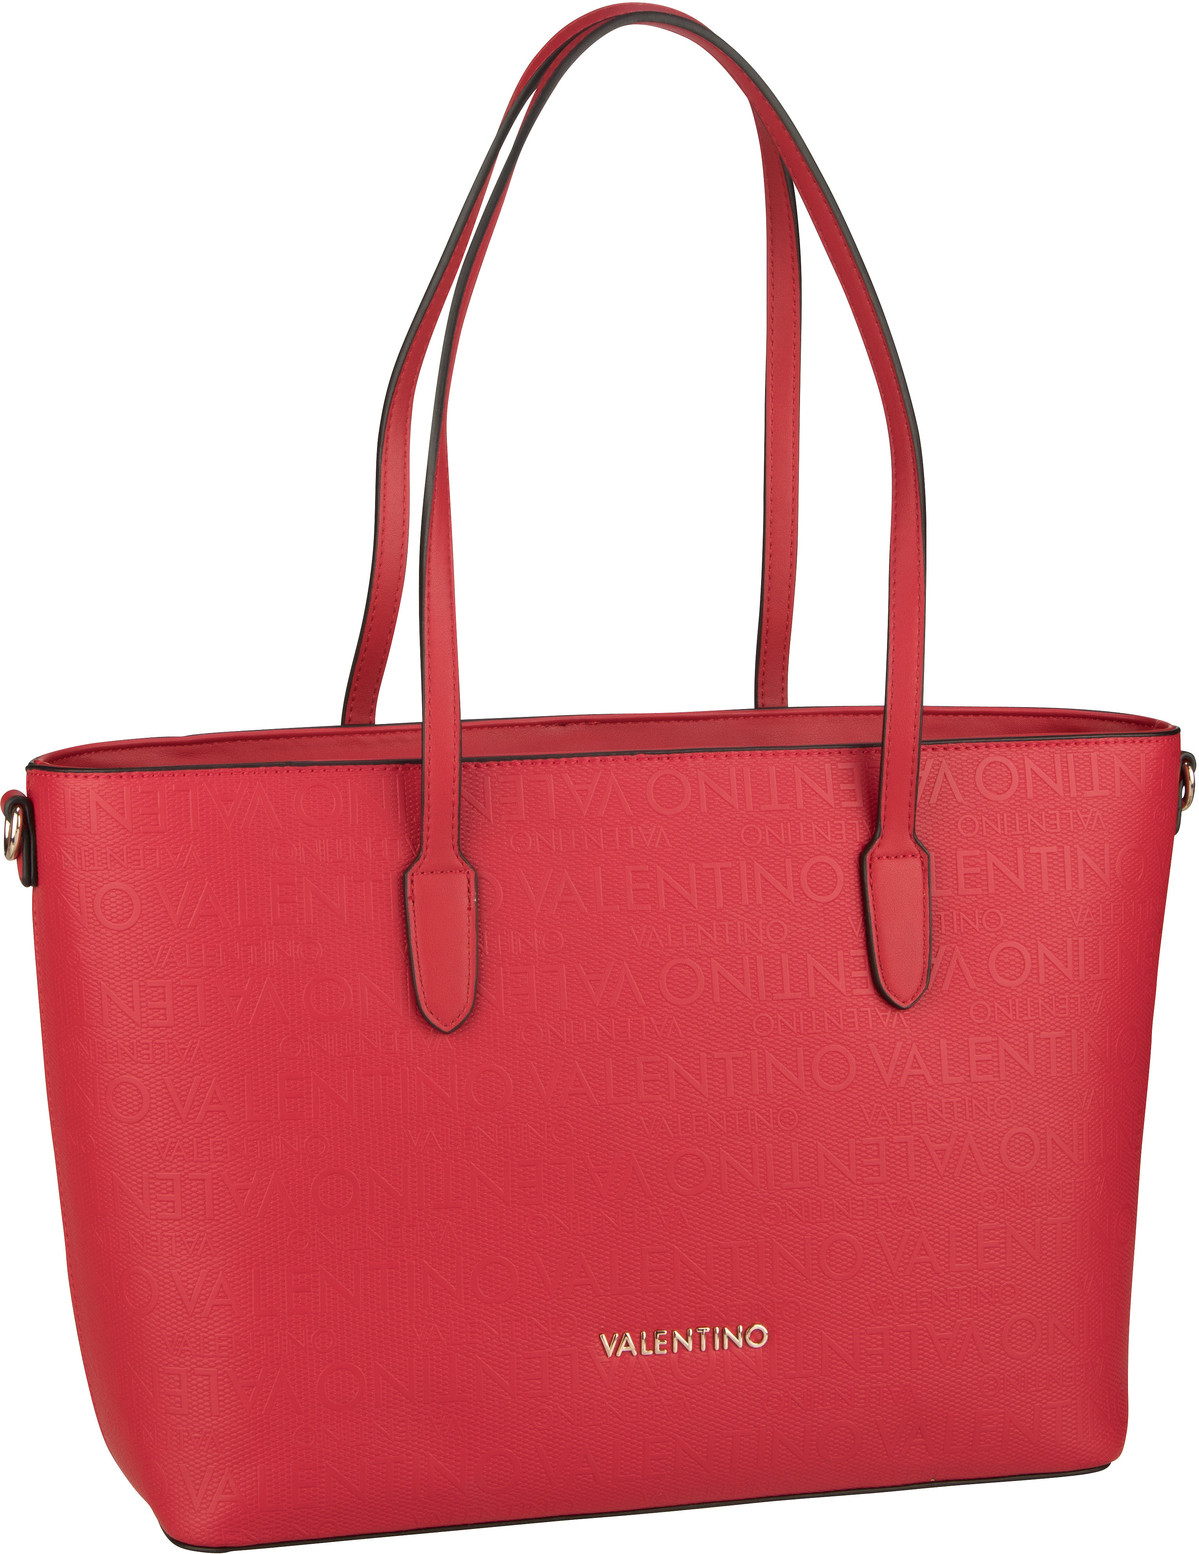 Bags Shopper Winter Dory Shopping P01 Rosso